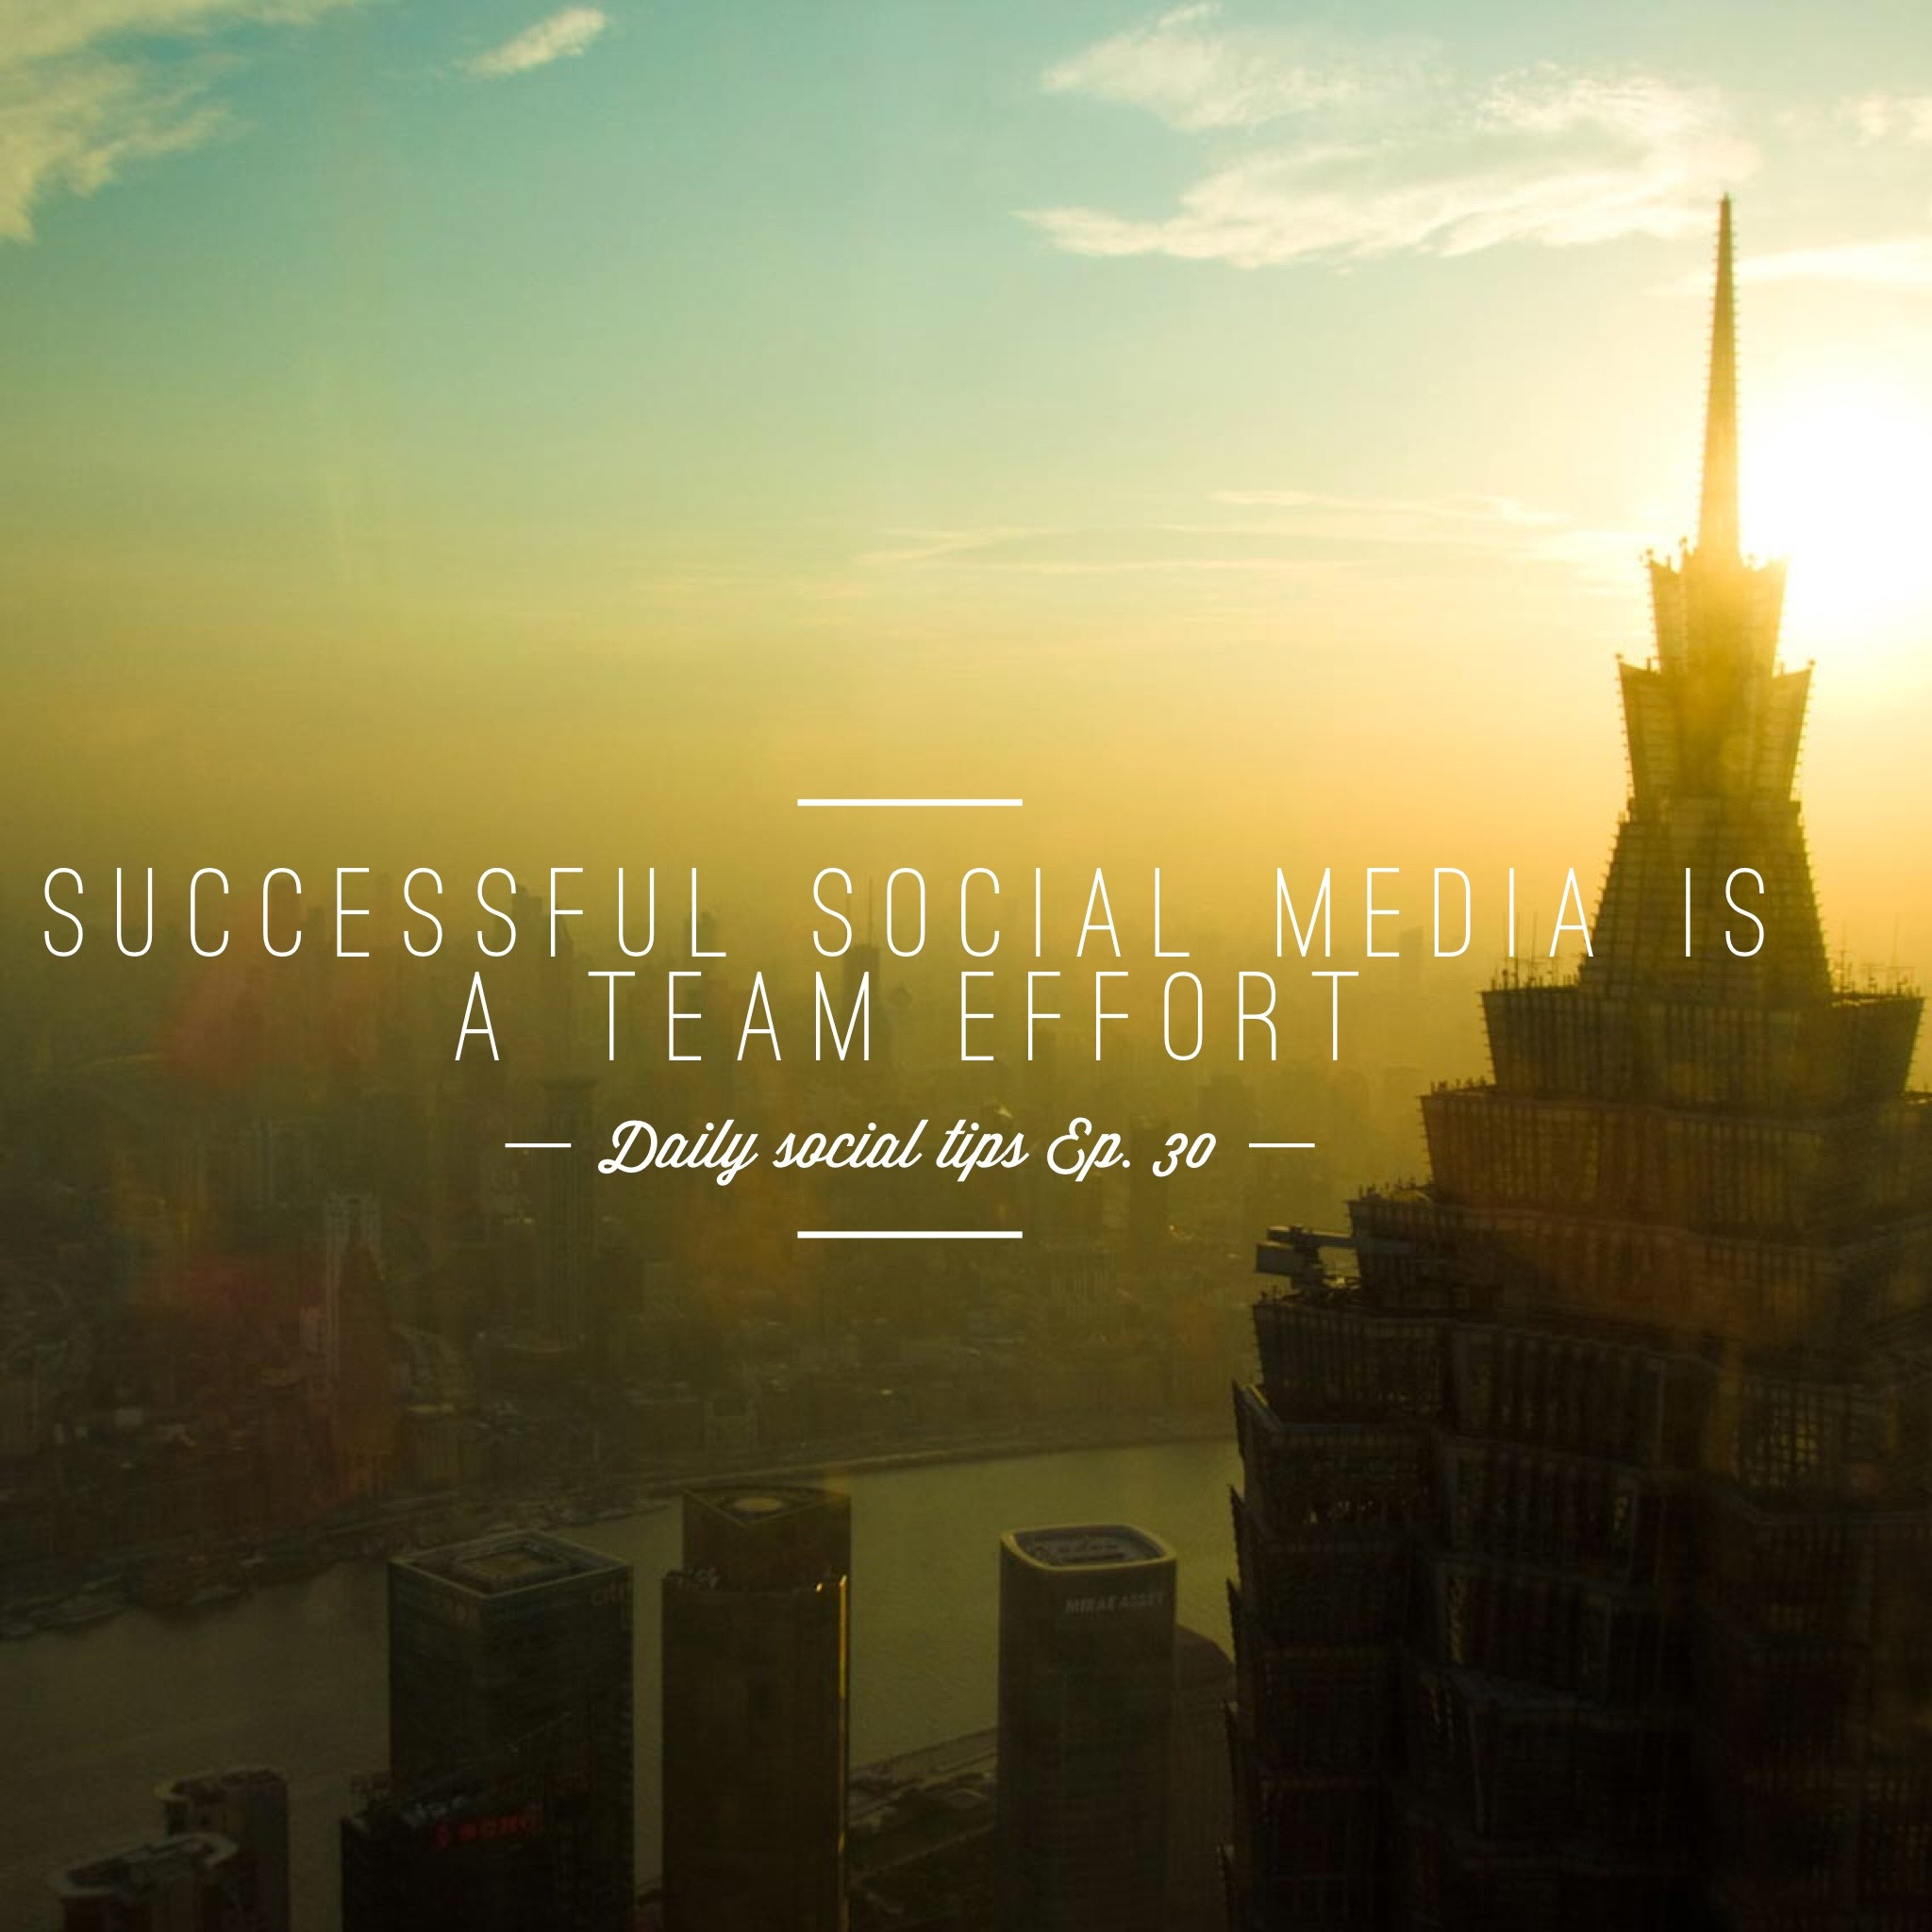 social media is a team effort